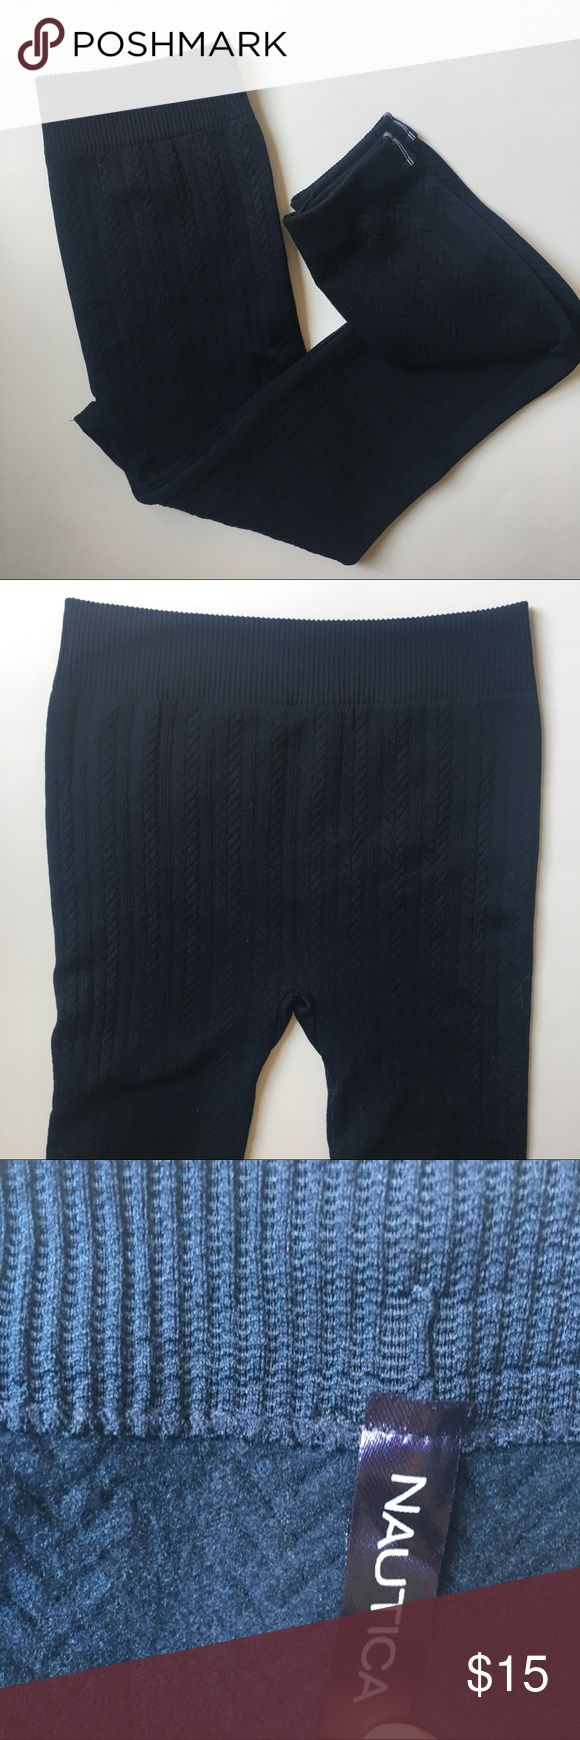 "NWOT Nautica Leggings in  Navy These Nautica leggings are in perfect condition, and never worn! The fleece still has that never washed, new out of box feel. The size tag says ""S/M"" They have plenty of stretch to them. They have a nice cable knit design and are in Navy blue. Perfect for fall. Let me know if you have any questions. I love to make awesome deals on bundles. Check out the other items in my closet. <3 Nautica Pants Leggings"